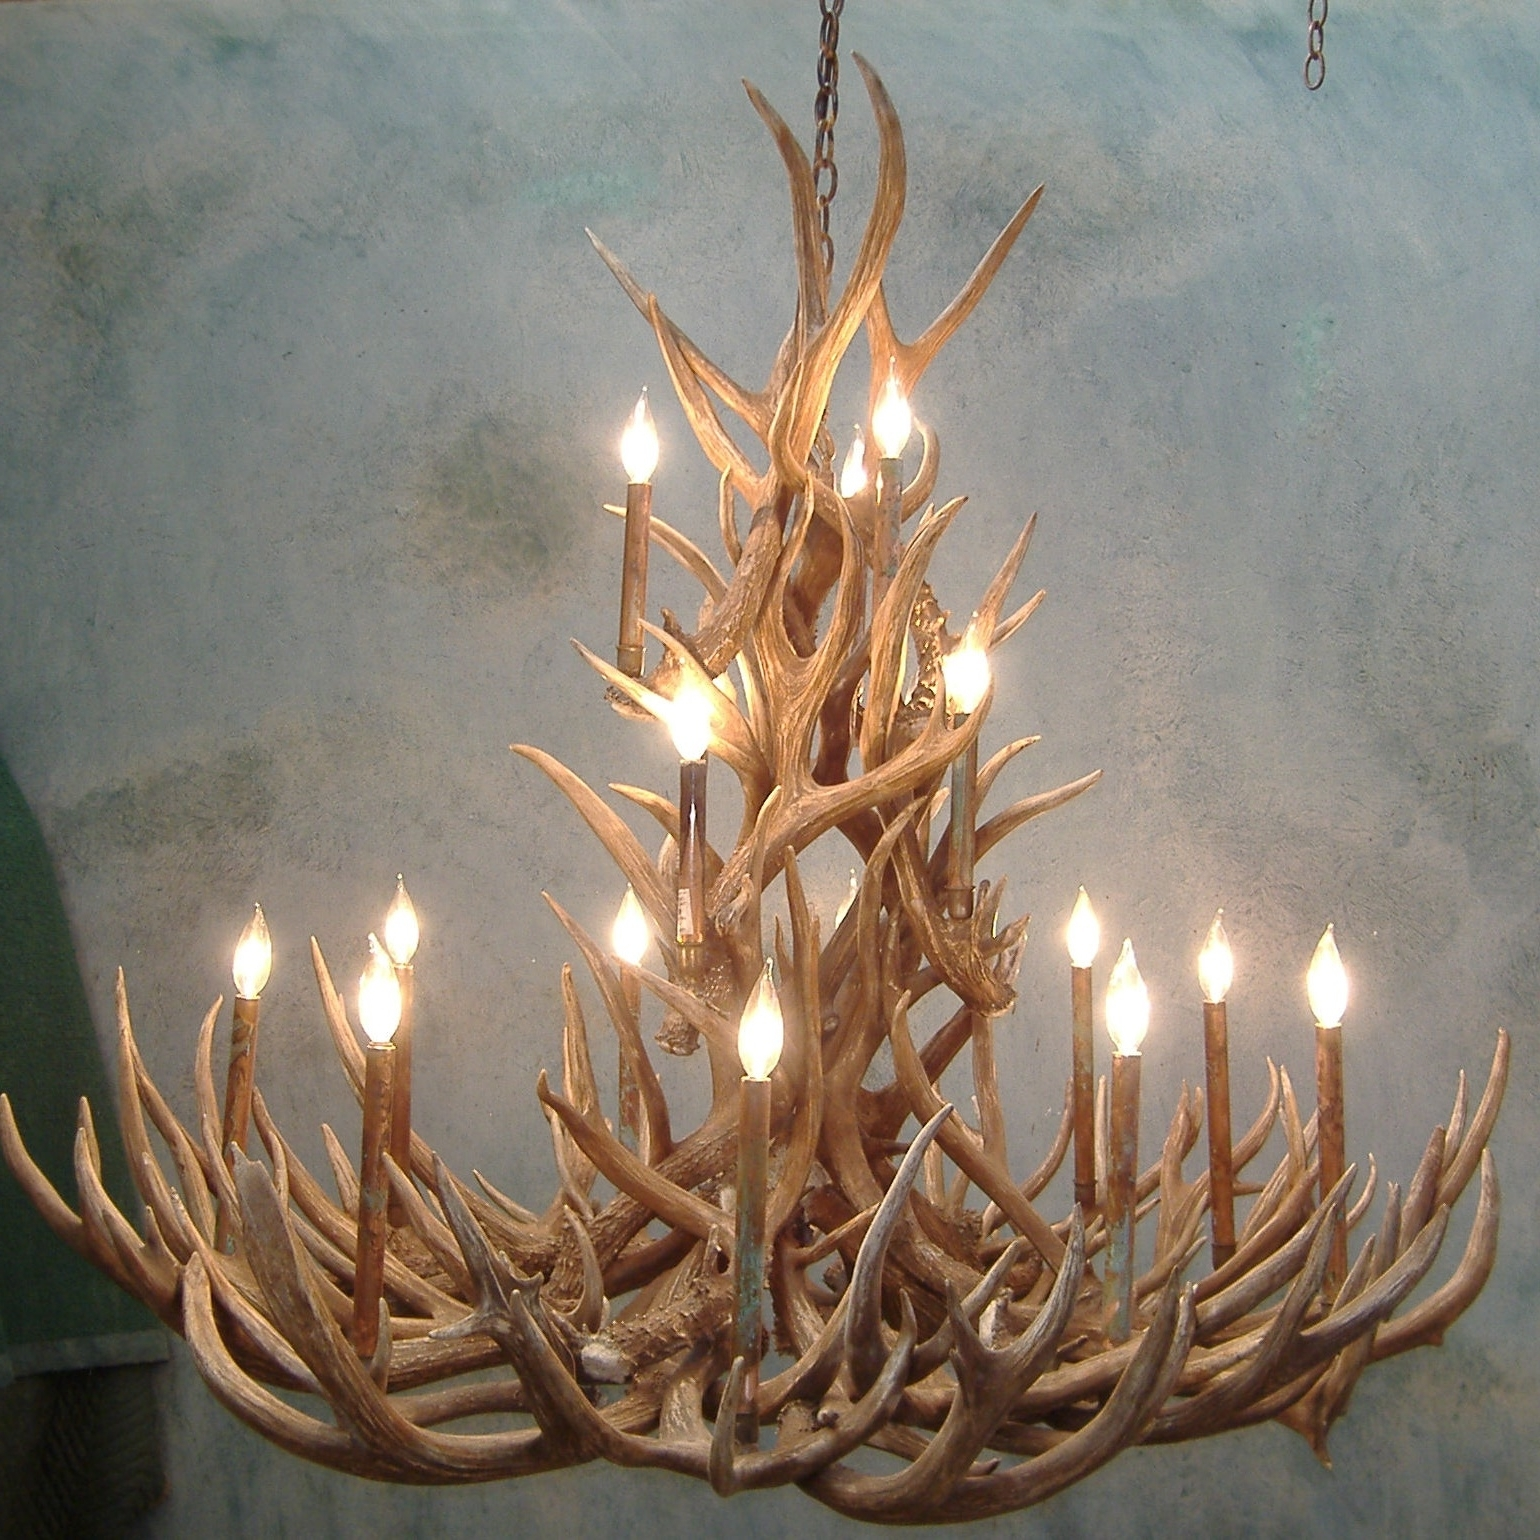 Spruce Mule Deer Antler Chandelier Pertaining To Fashionable Antler Chandelier (View 7 of 15)